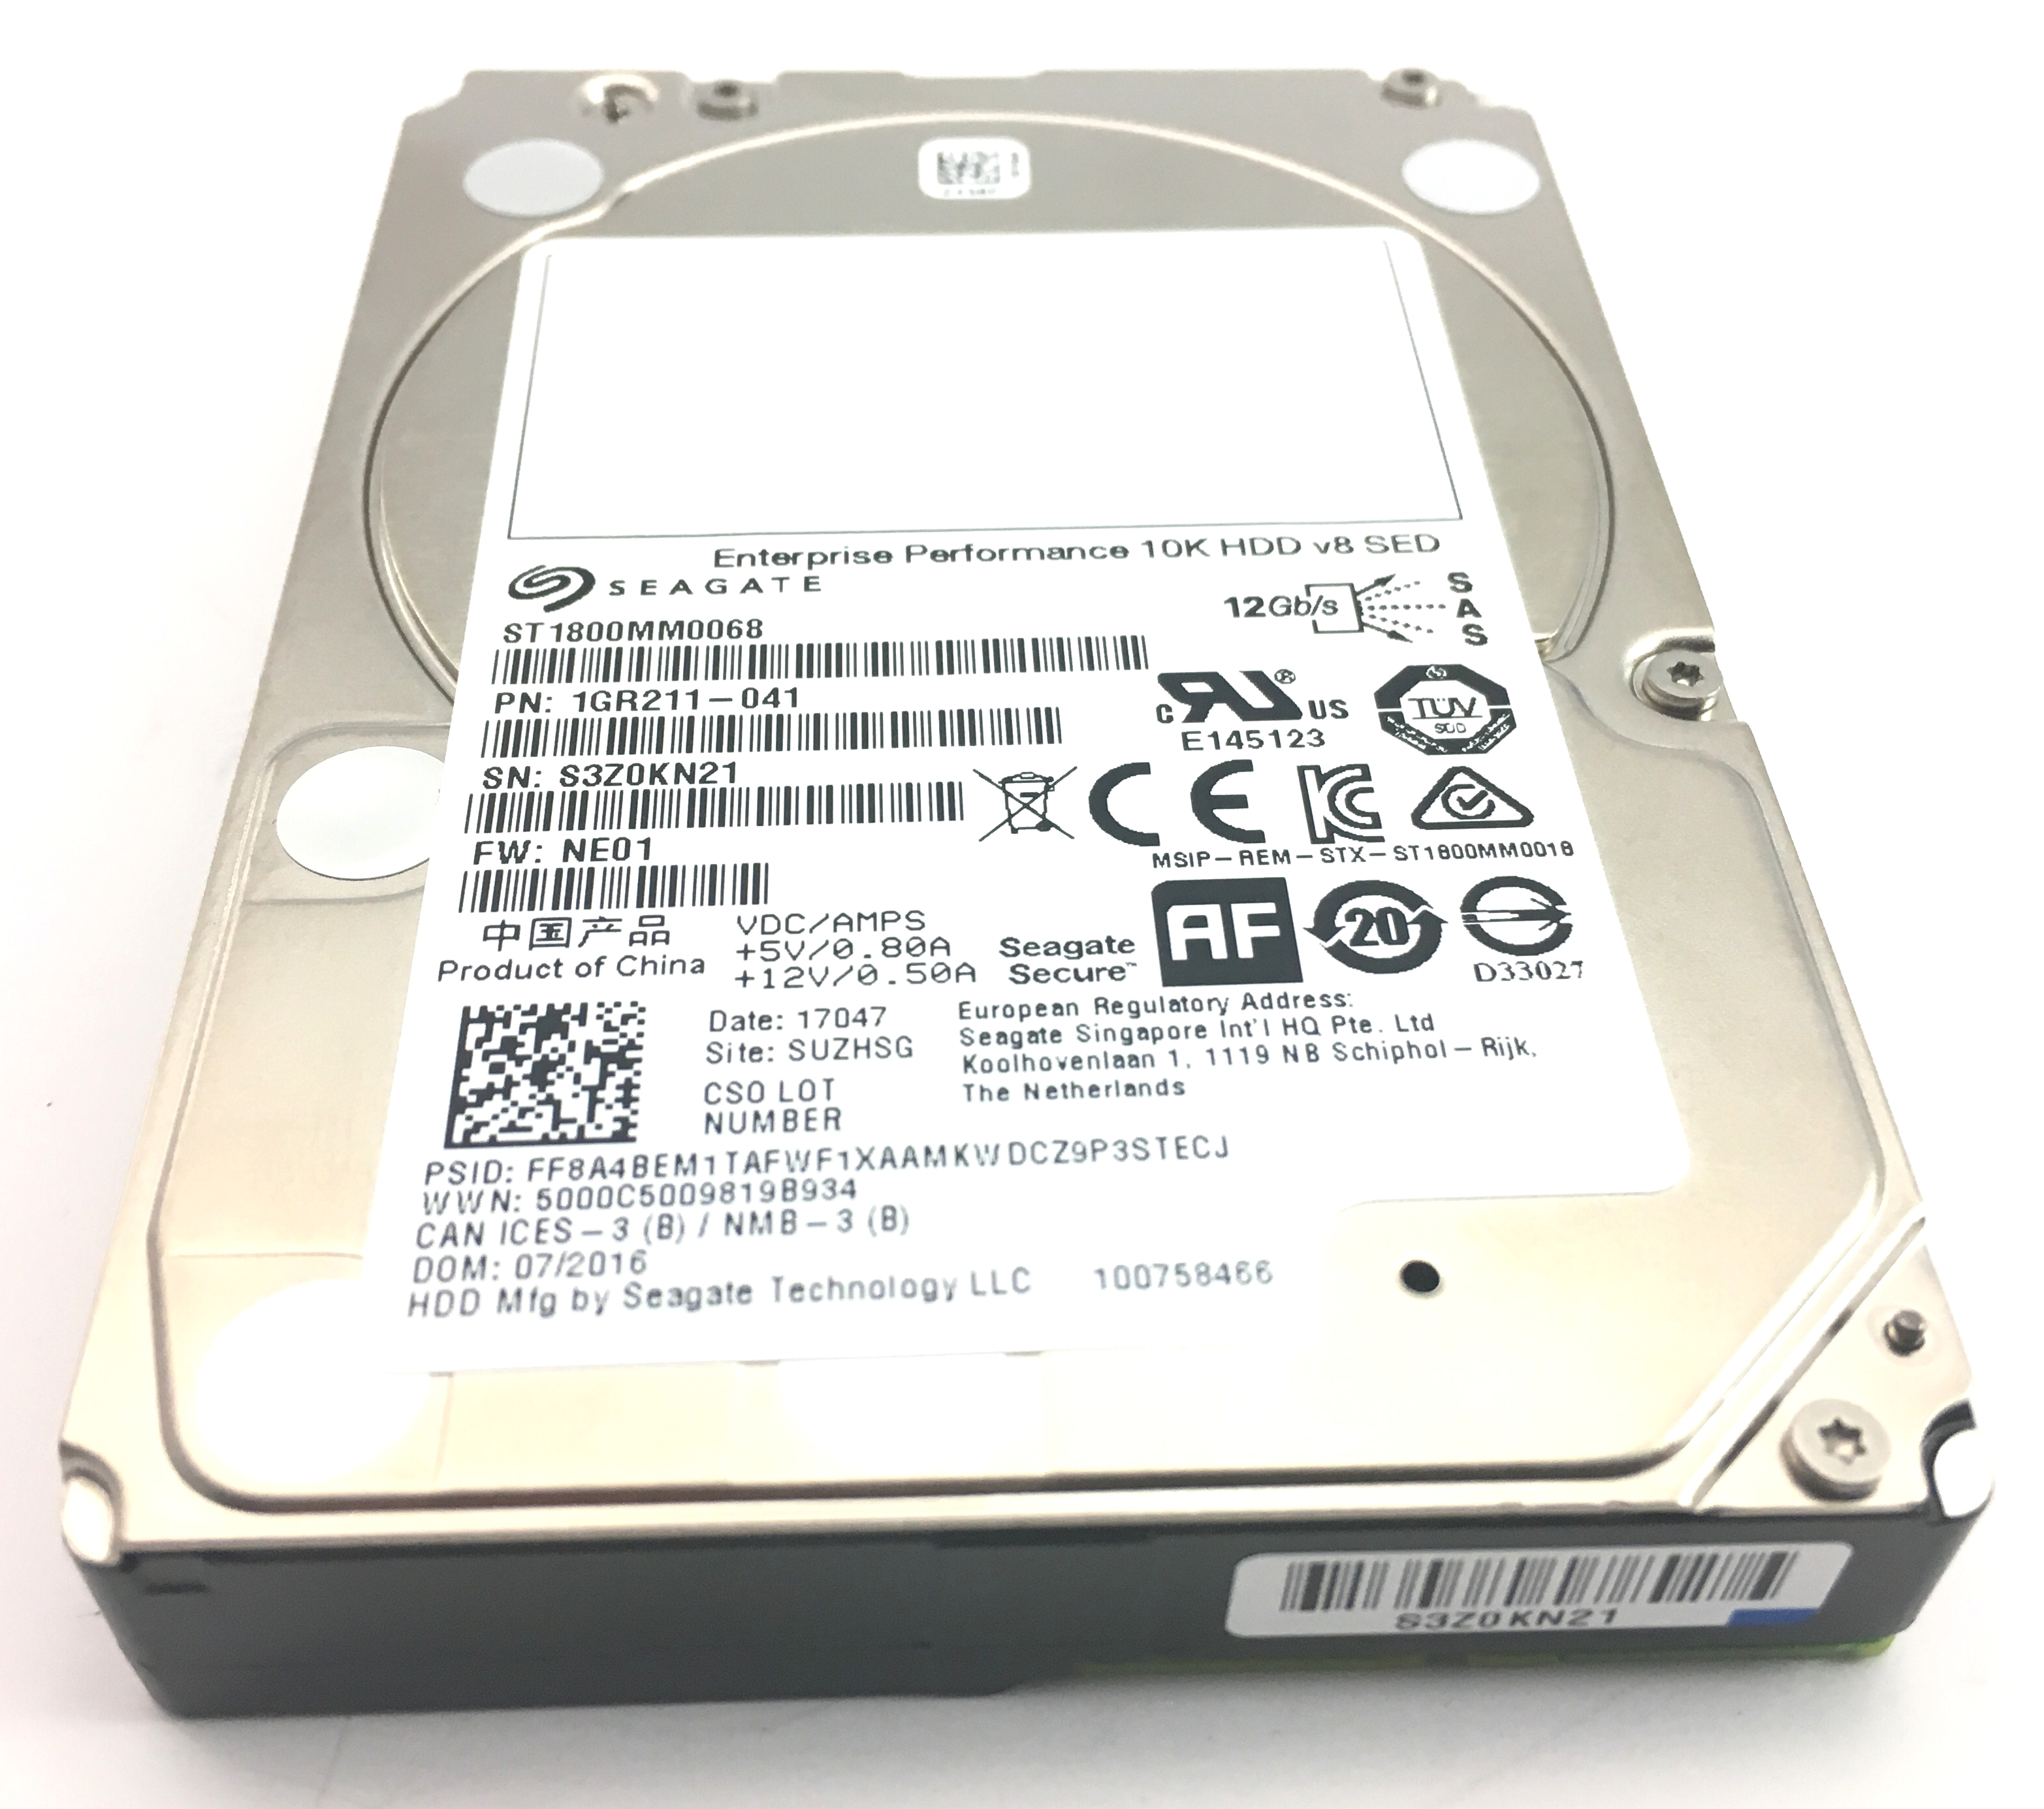 SEAGATE 1.8TB 10K 12GBPS SAS 2.5'' HDD HARD DRIVE (ST1800MM0068)